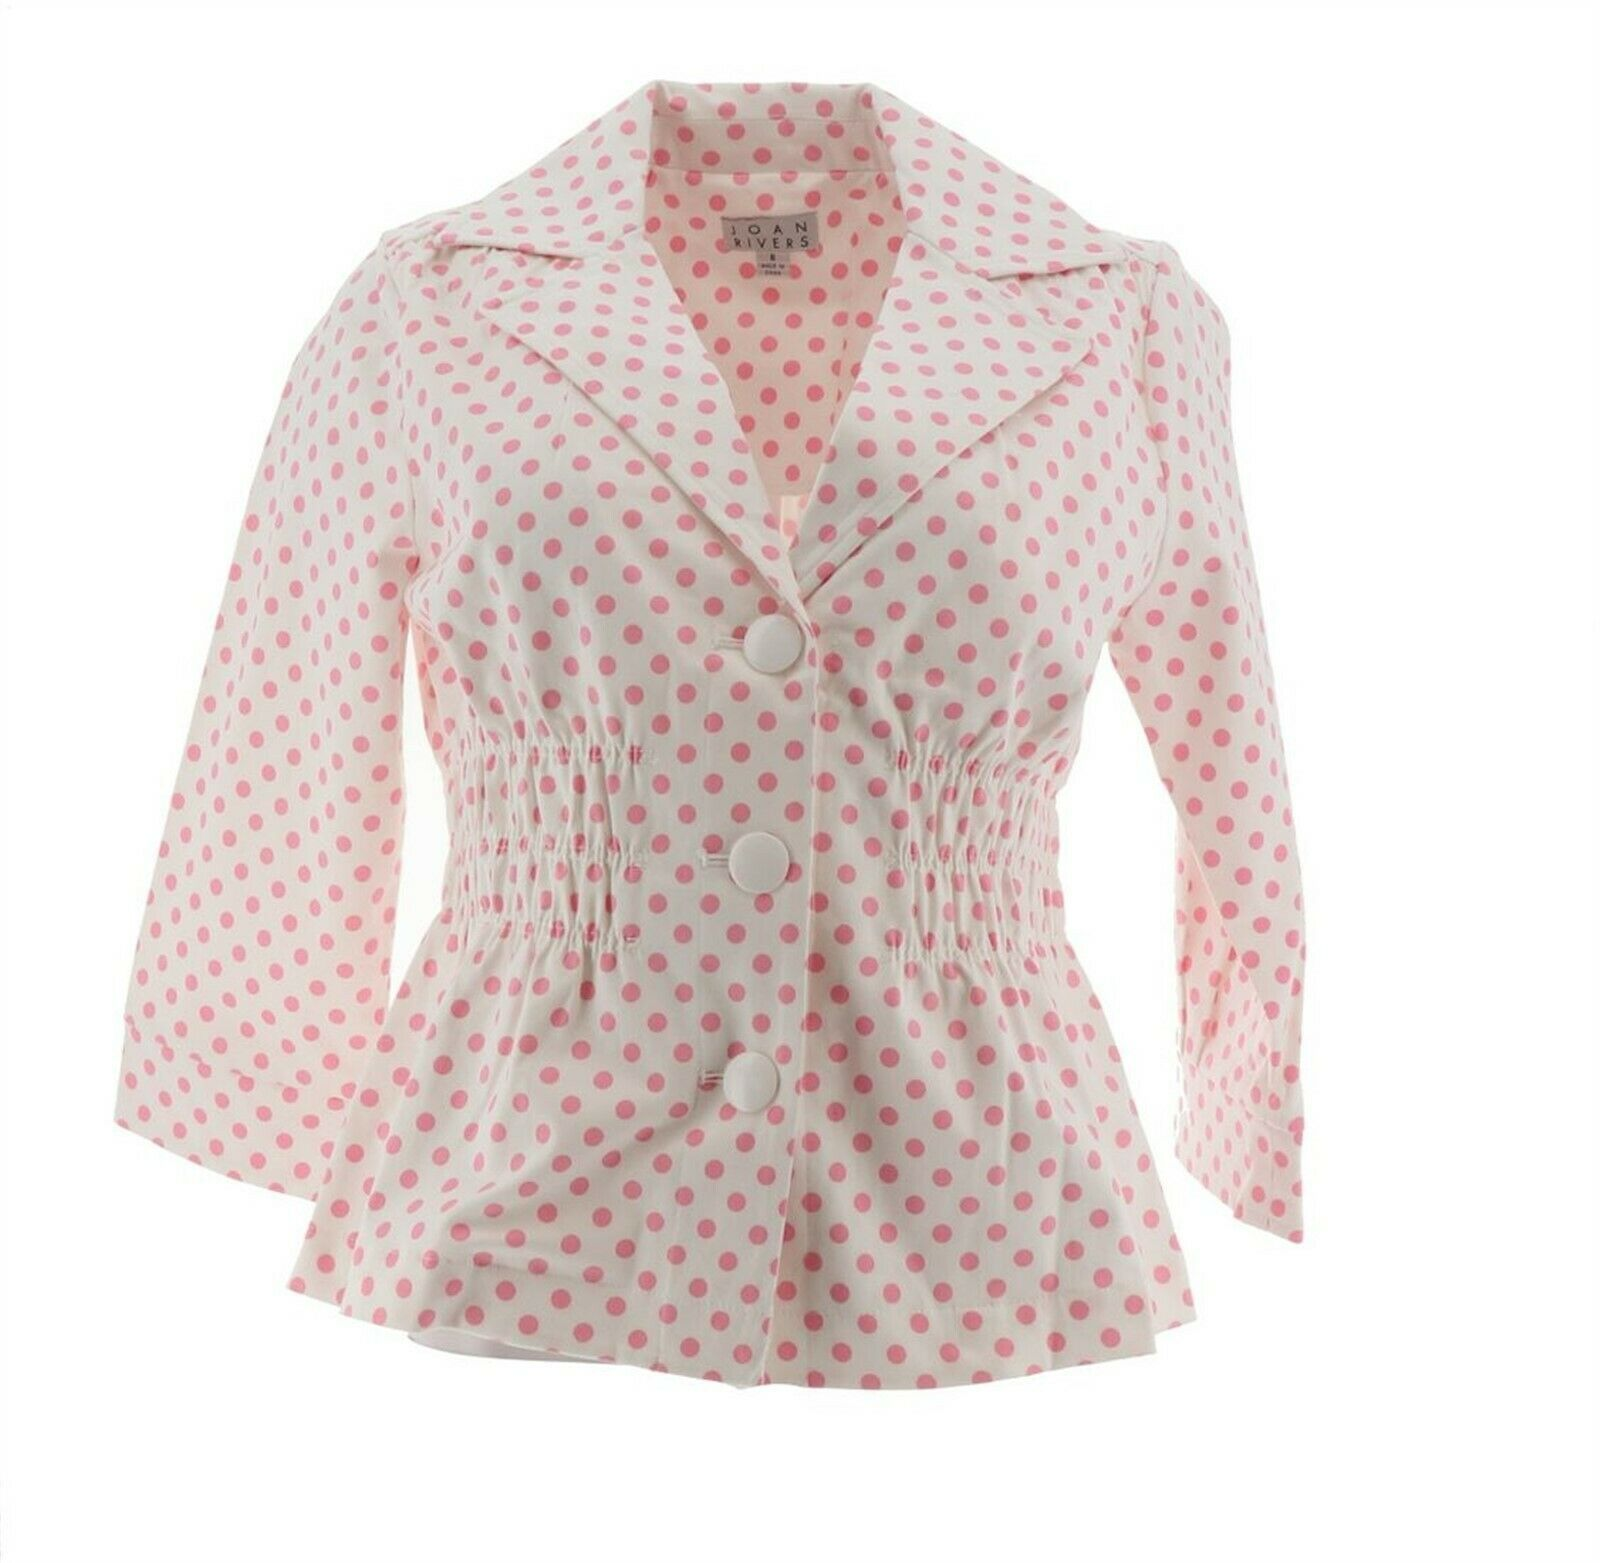 Primary image for Joan Rivers Polka Dot Signature Jacket 3/4 Slvs White Pink 16 NEW A262517